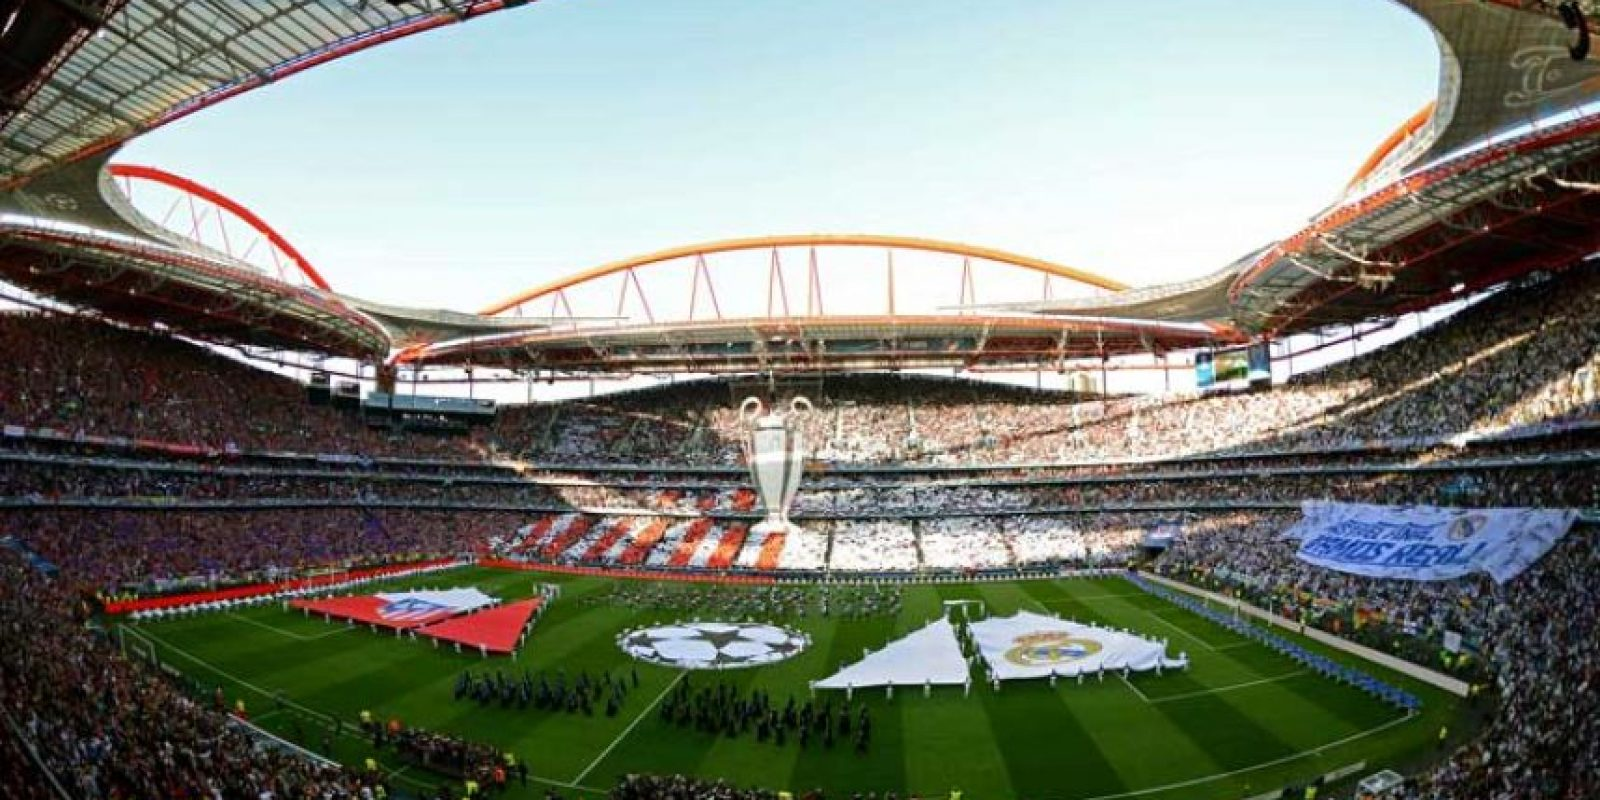 2014: Real Madrid vs. Atlético de Madrid Foto: Getty Images